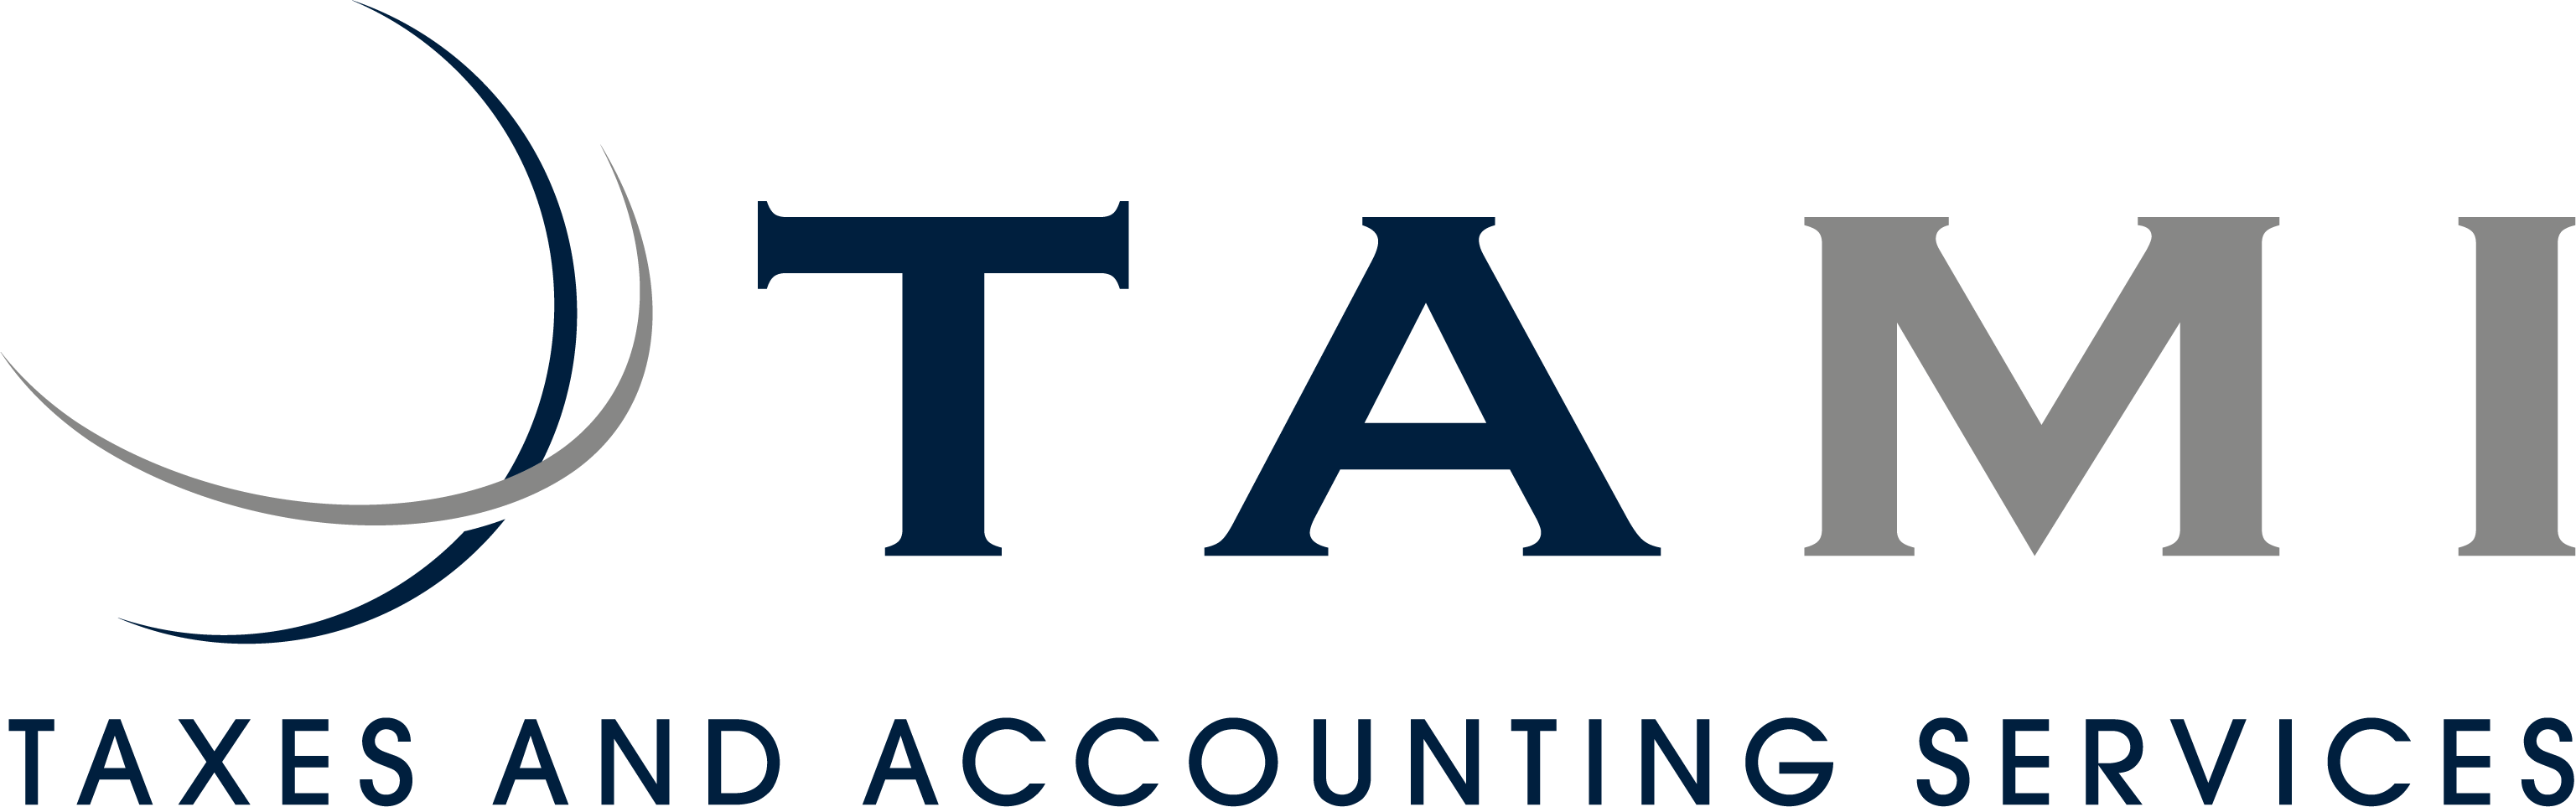 Logo TAMI | Taxes and Accounting Services